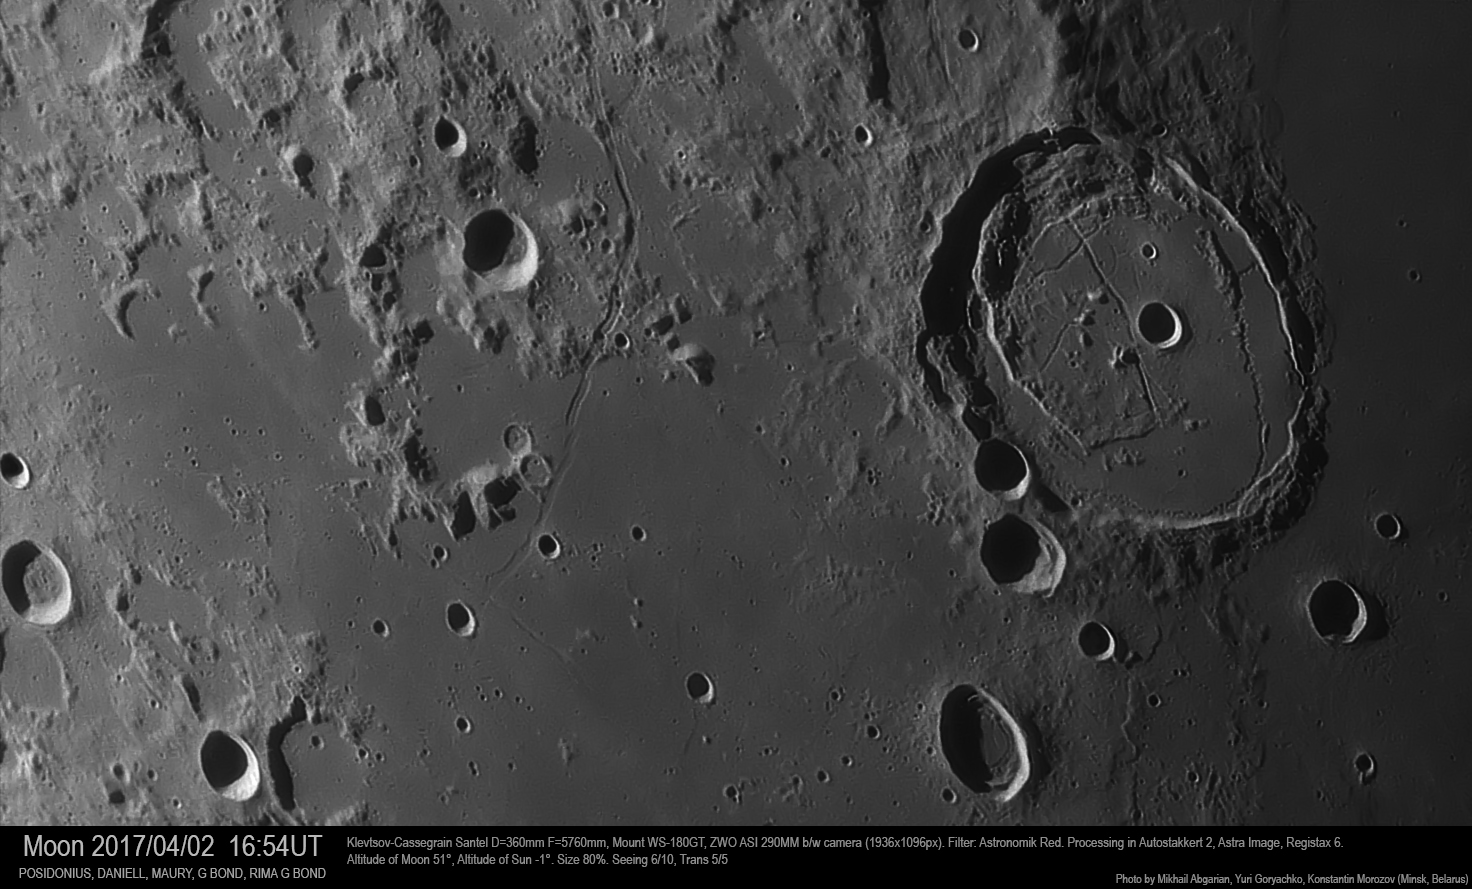 Moon_20170402_Posidonius.jpg